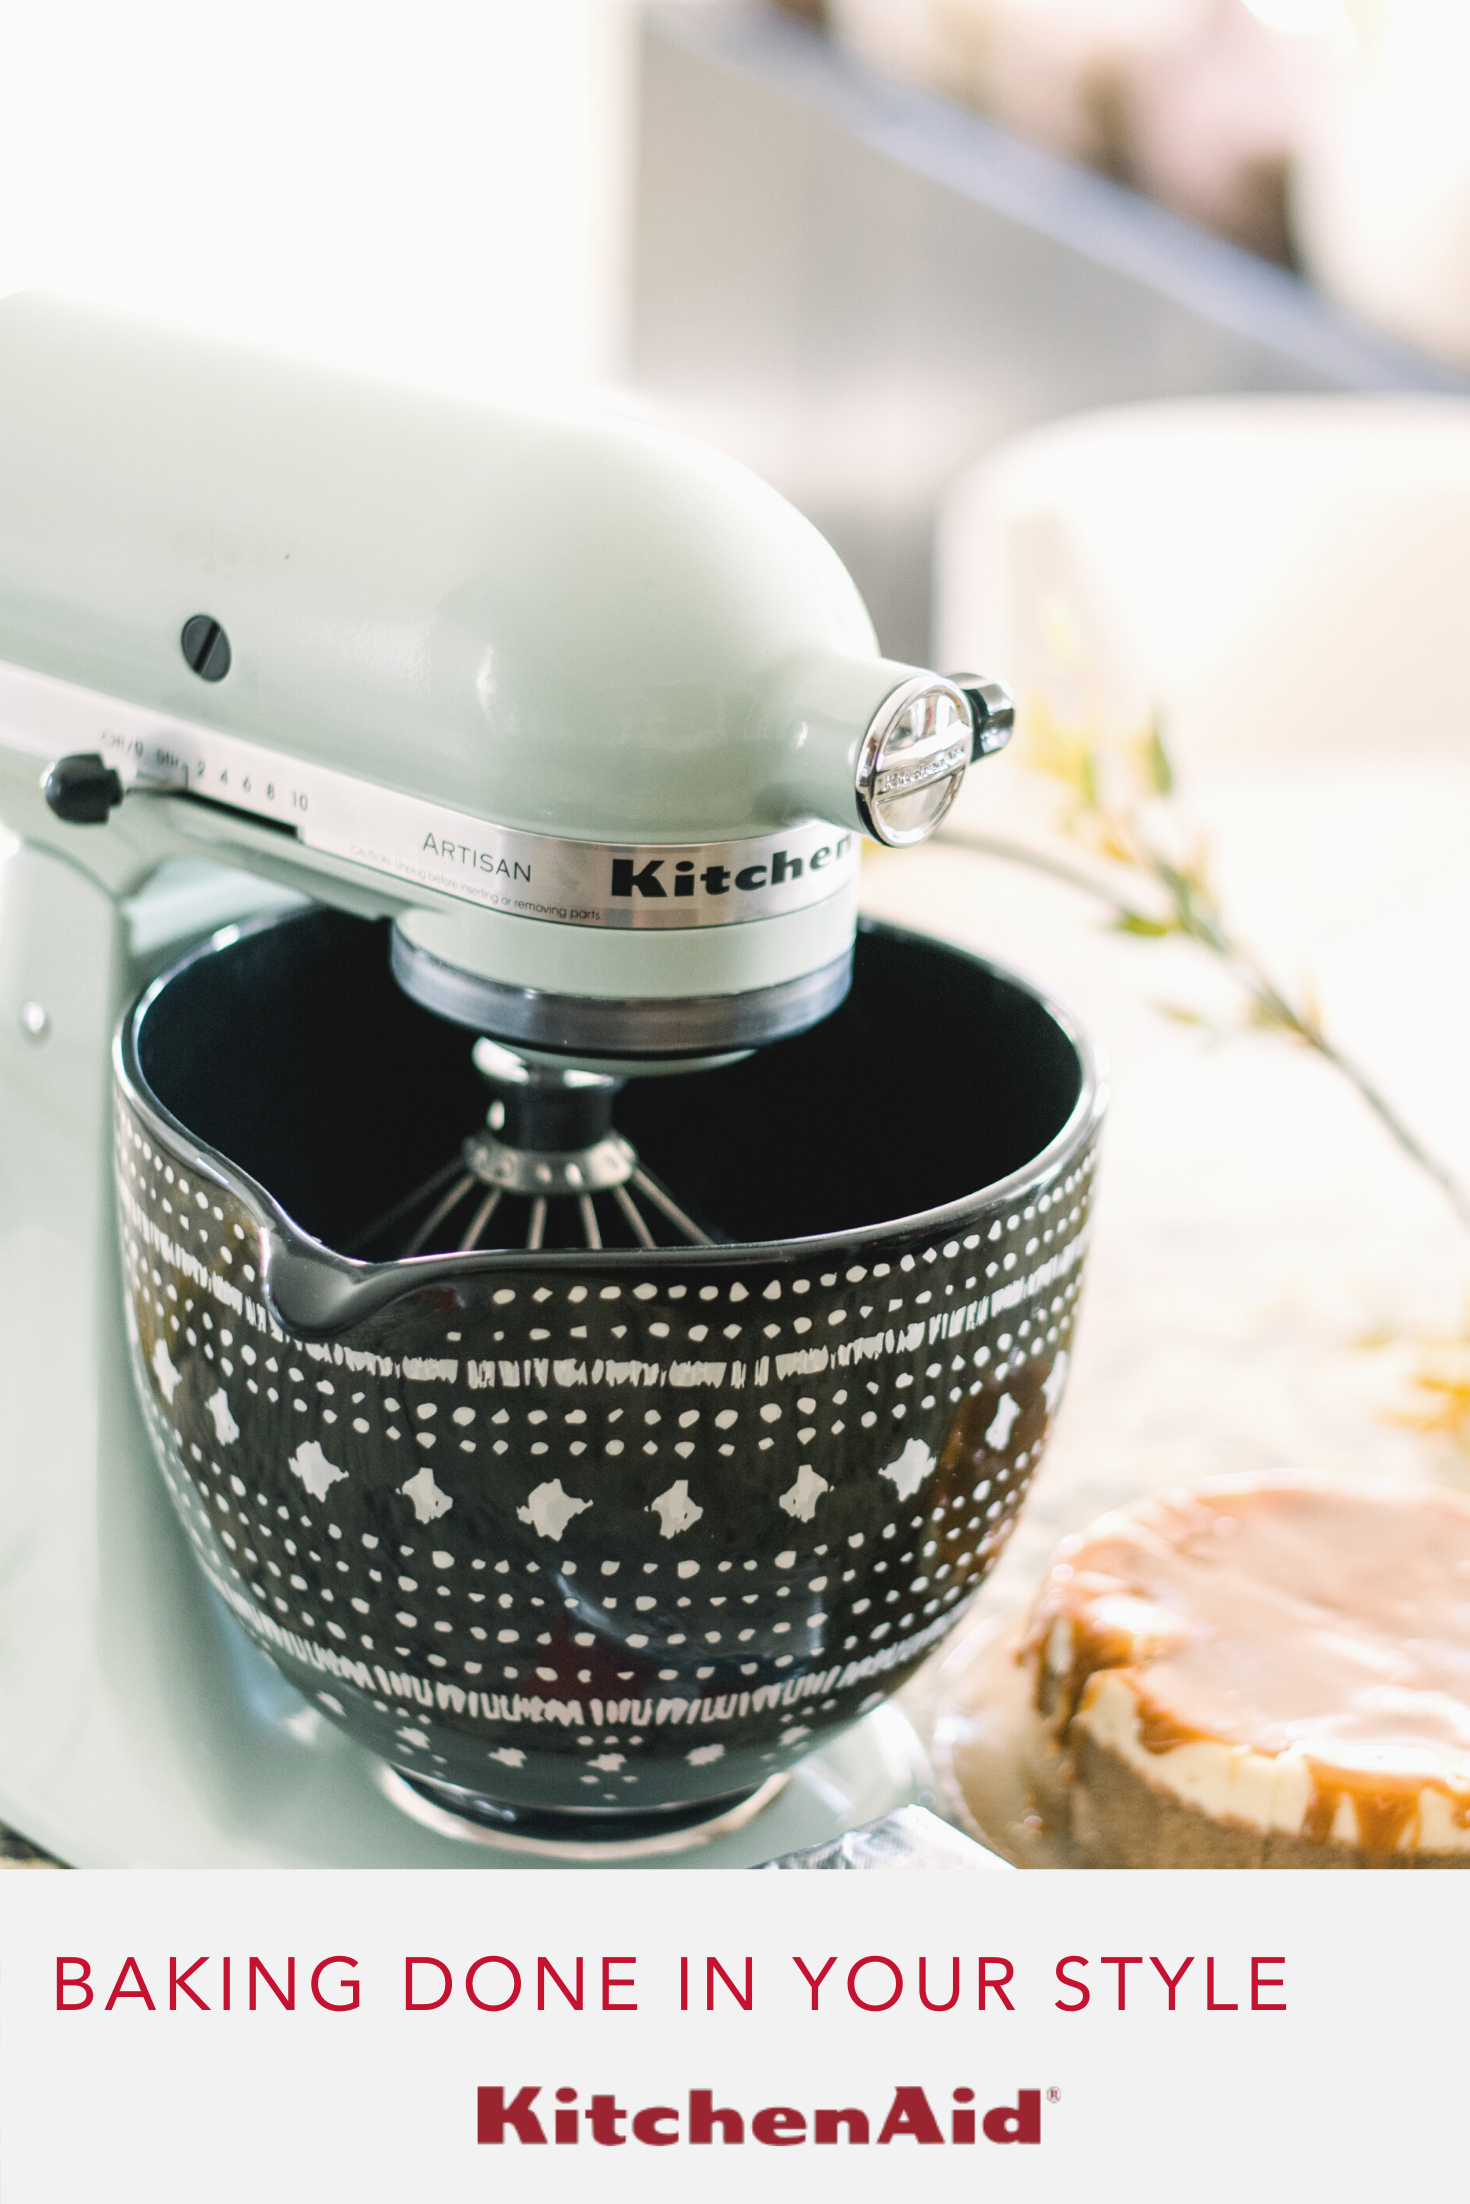 Every Maker Likes To Bake In Their Own Style Use The Kitchenaid Stand Mixer To Personalize Your Passion W Kitchen Aid Kitchen Aid Mixer Decal Artisan Kitchen